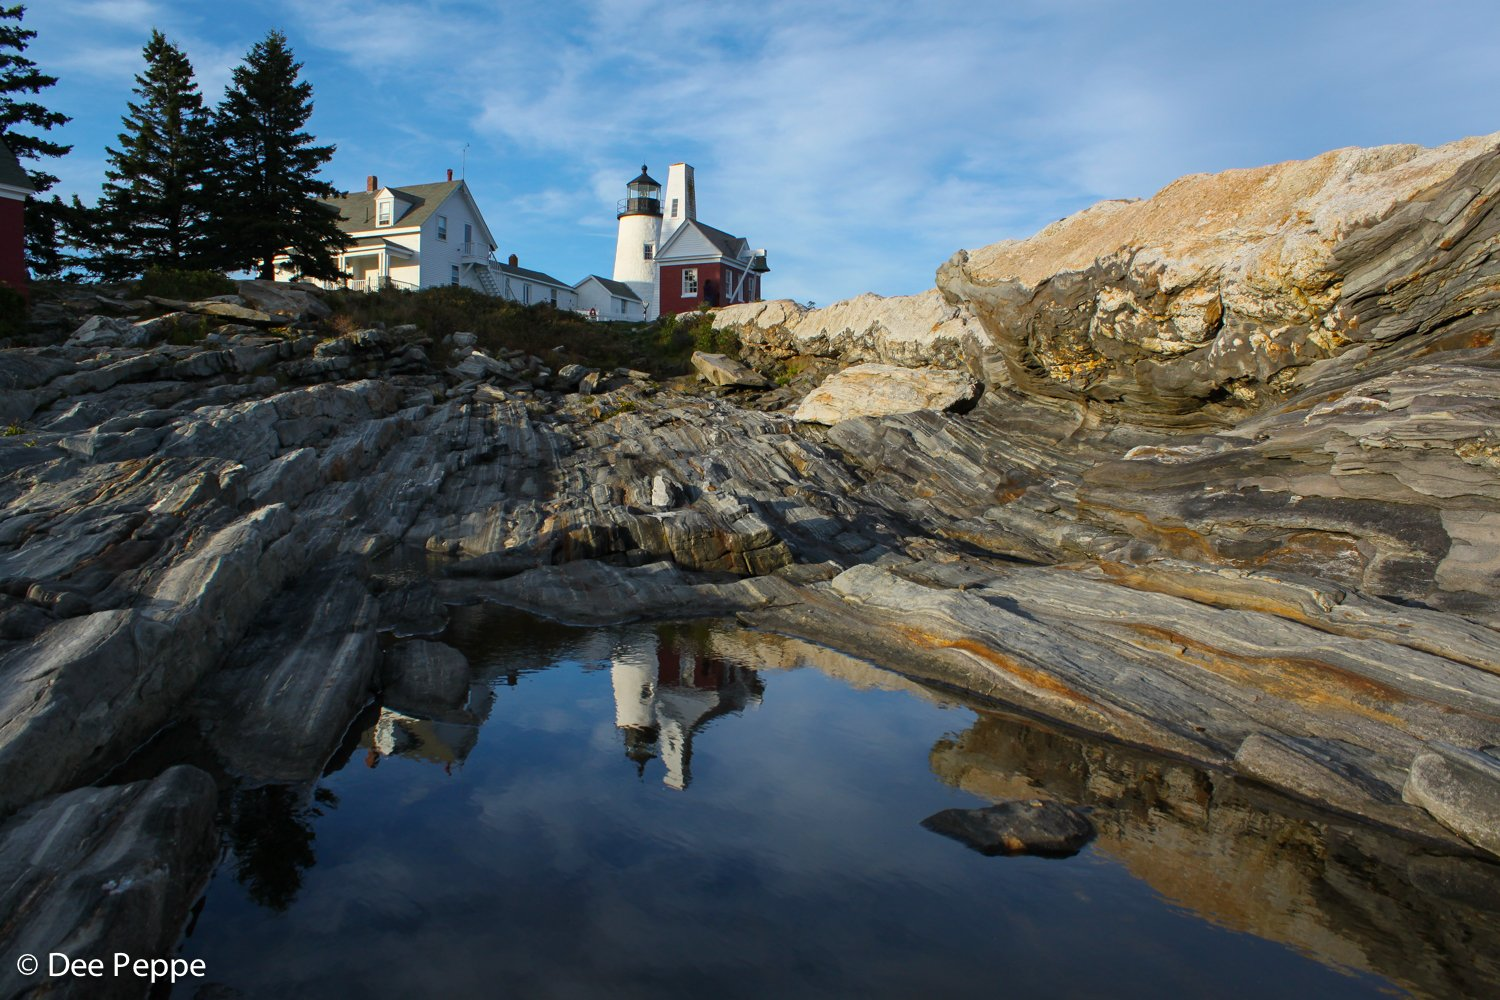 Reflection of Lighthouse